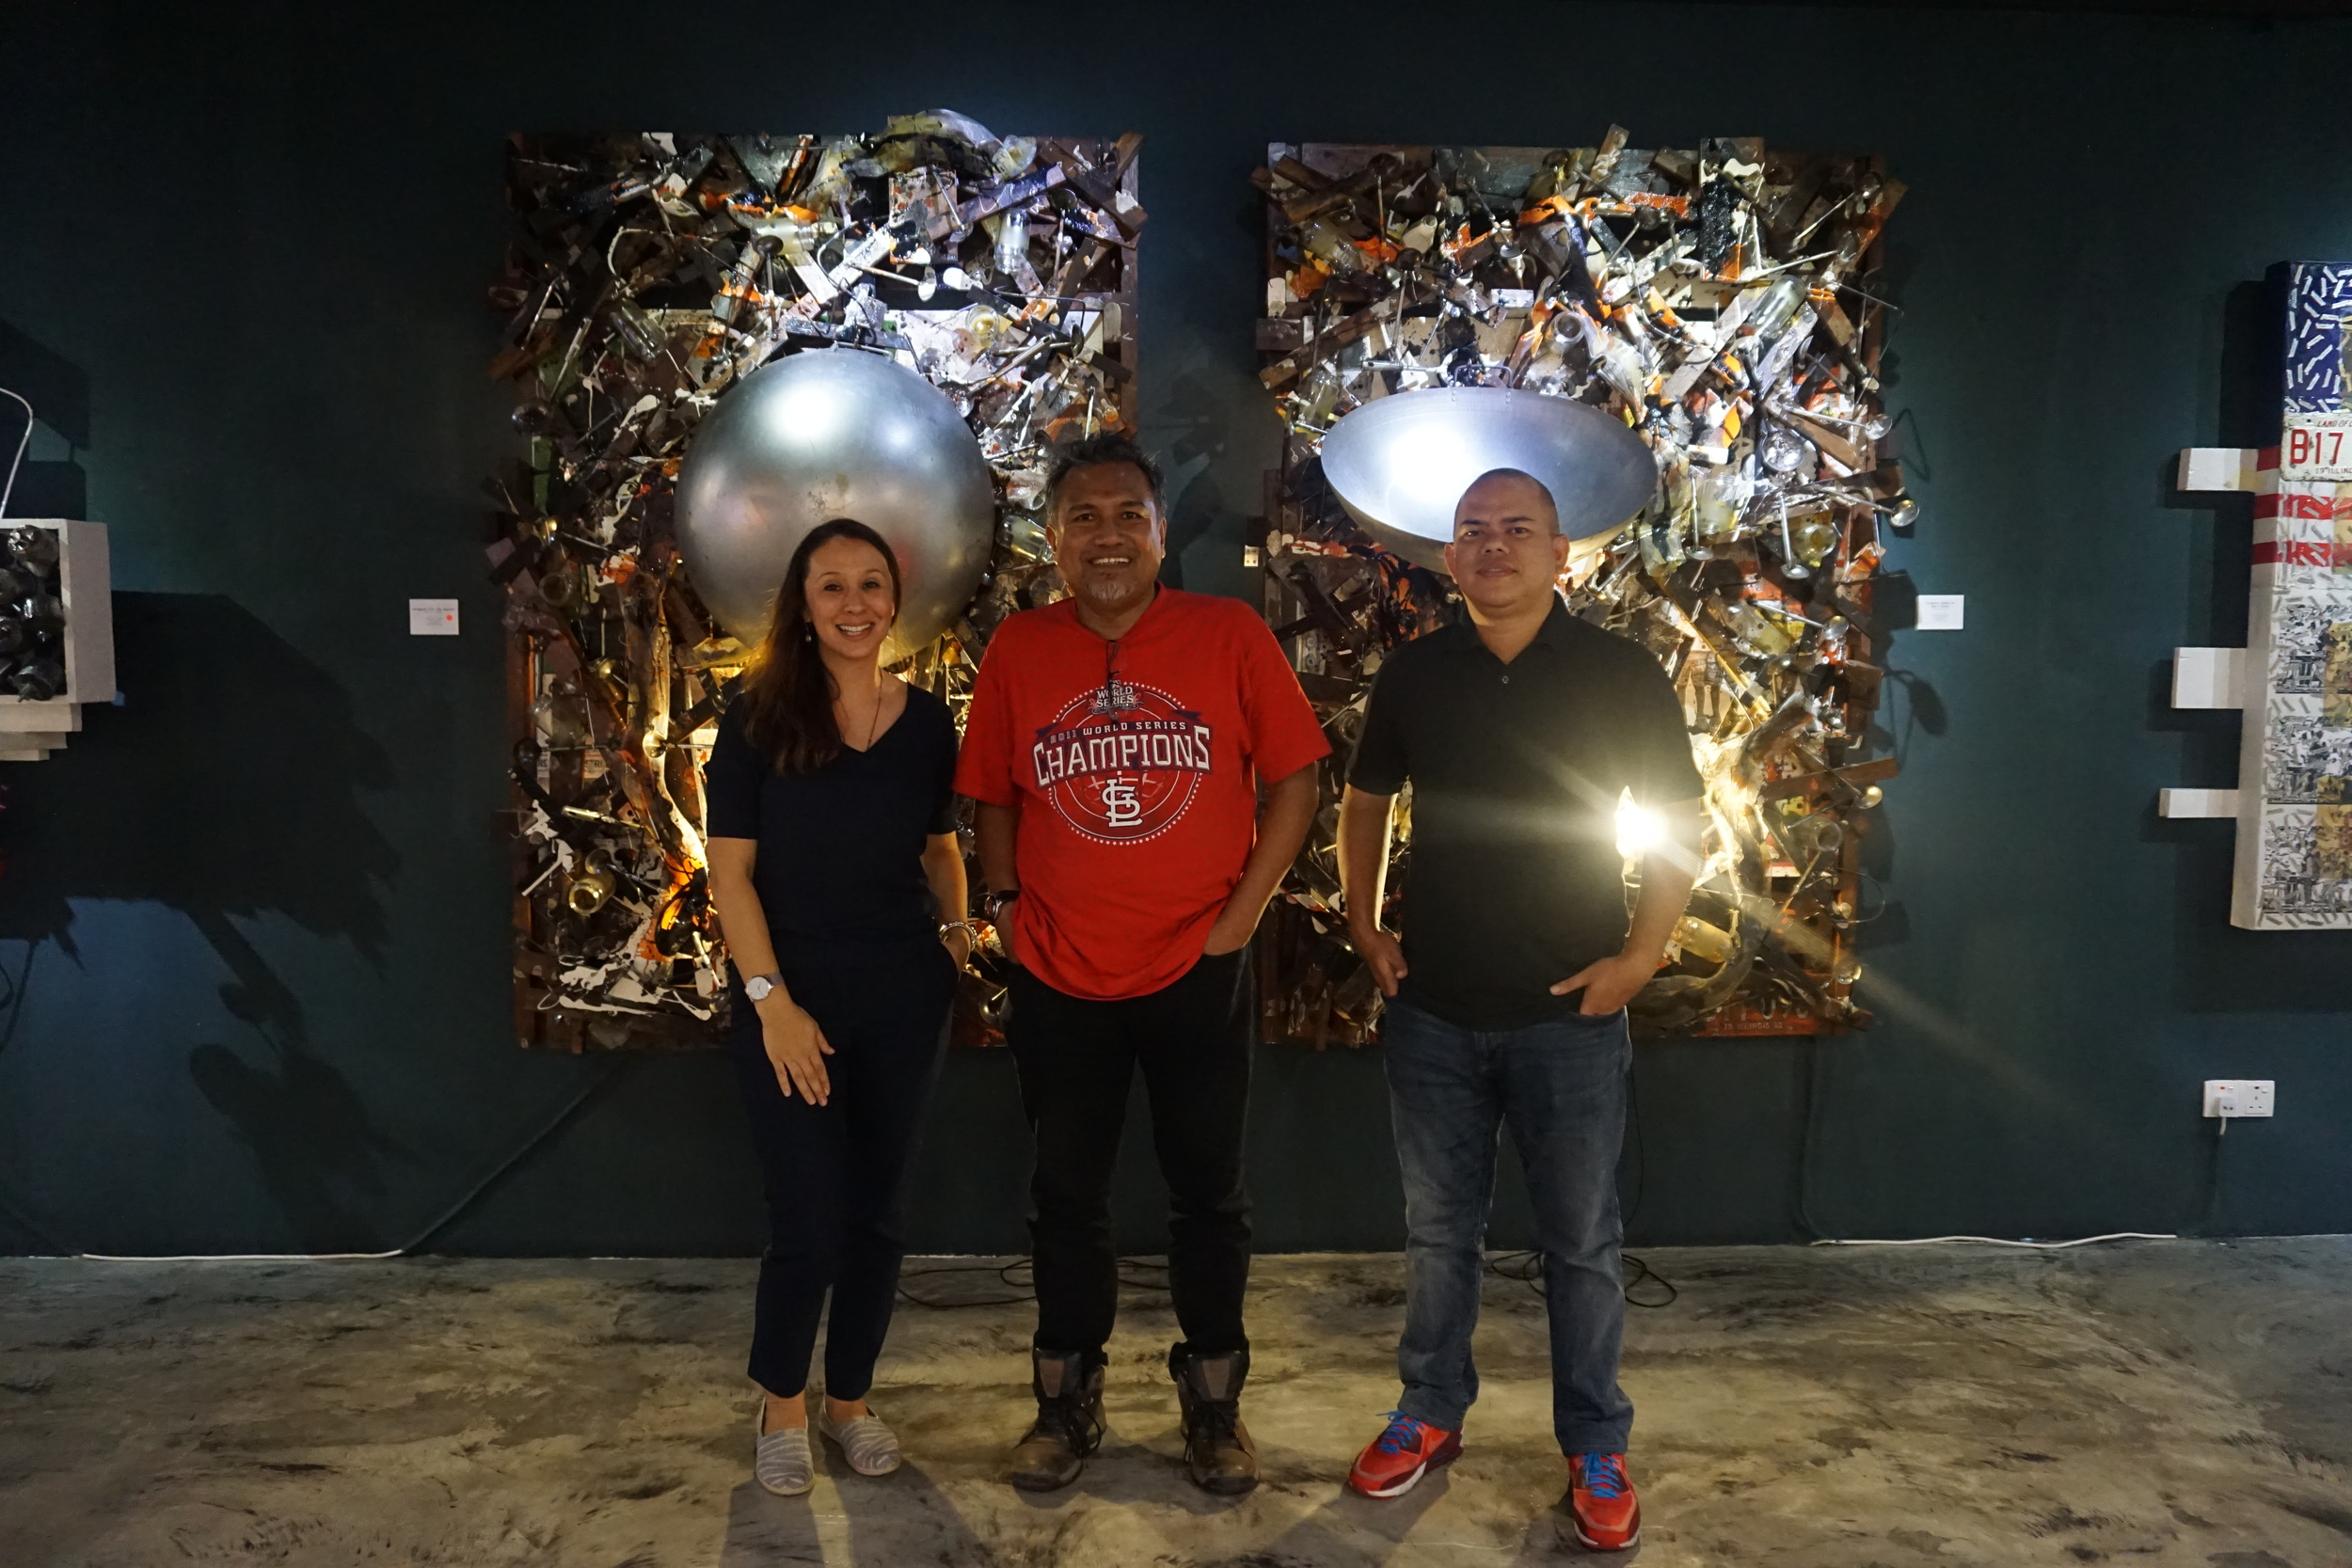 """In front of """"Ferguson (For the People) - 2012/14 and """"Ferguson (Hands Up, Don't Shoot) - 2012/14 together with Suhaimi Fadzir and Azhar Ahmad."""